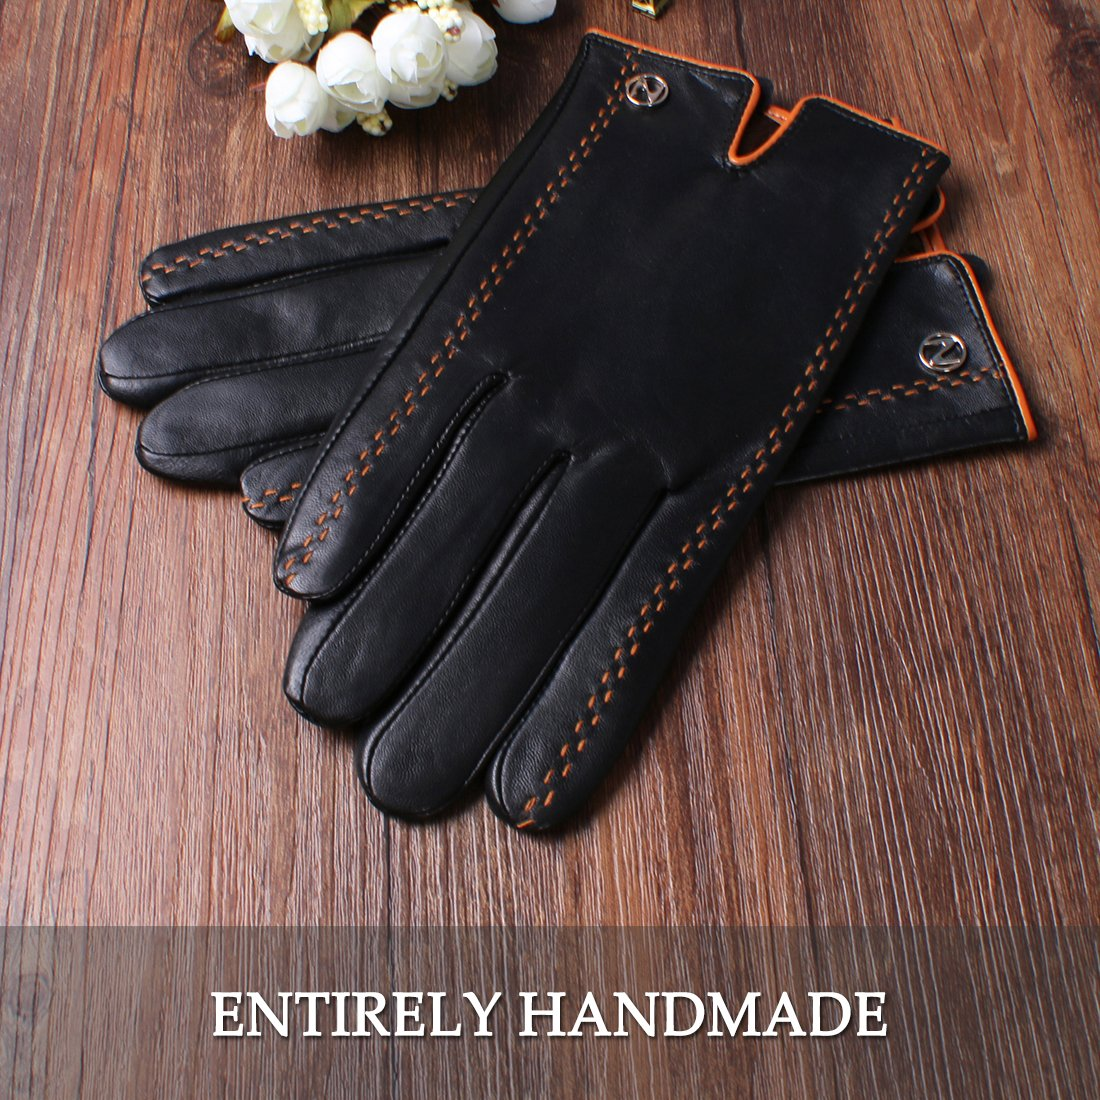 Nappaglo Men's Italian Nappa Leather Gloves Touchscreen Lambskin Warm Gloves with Lines of Hit Color (S (Palm Girth:up to 8''), Black (Touchscreen)) by Nappaglo (Image #4)